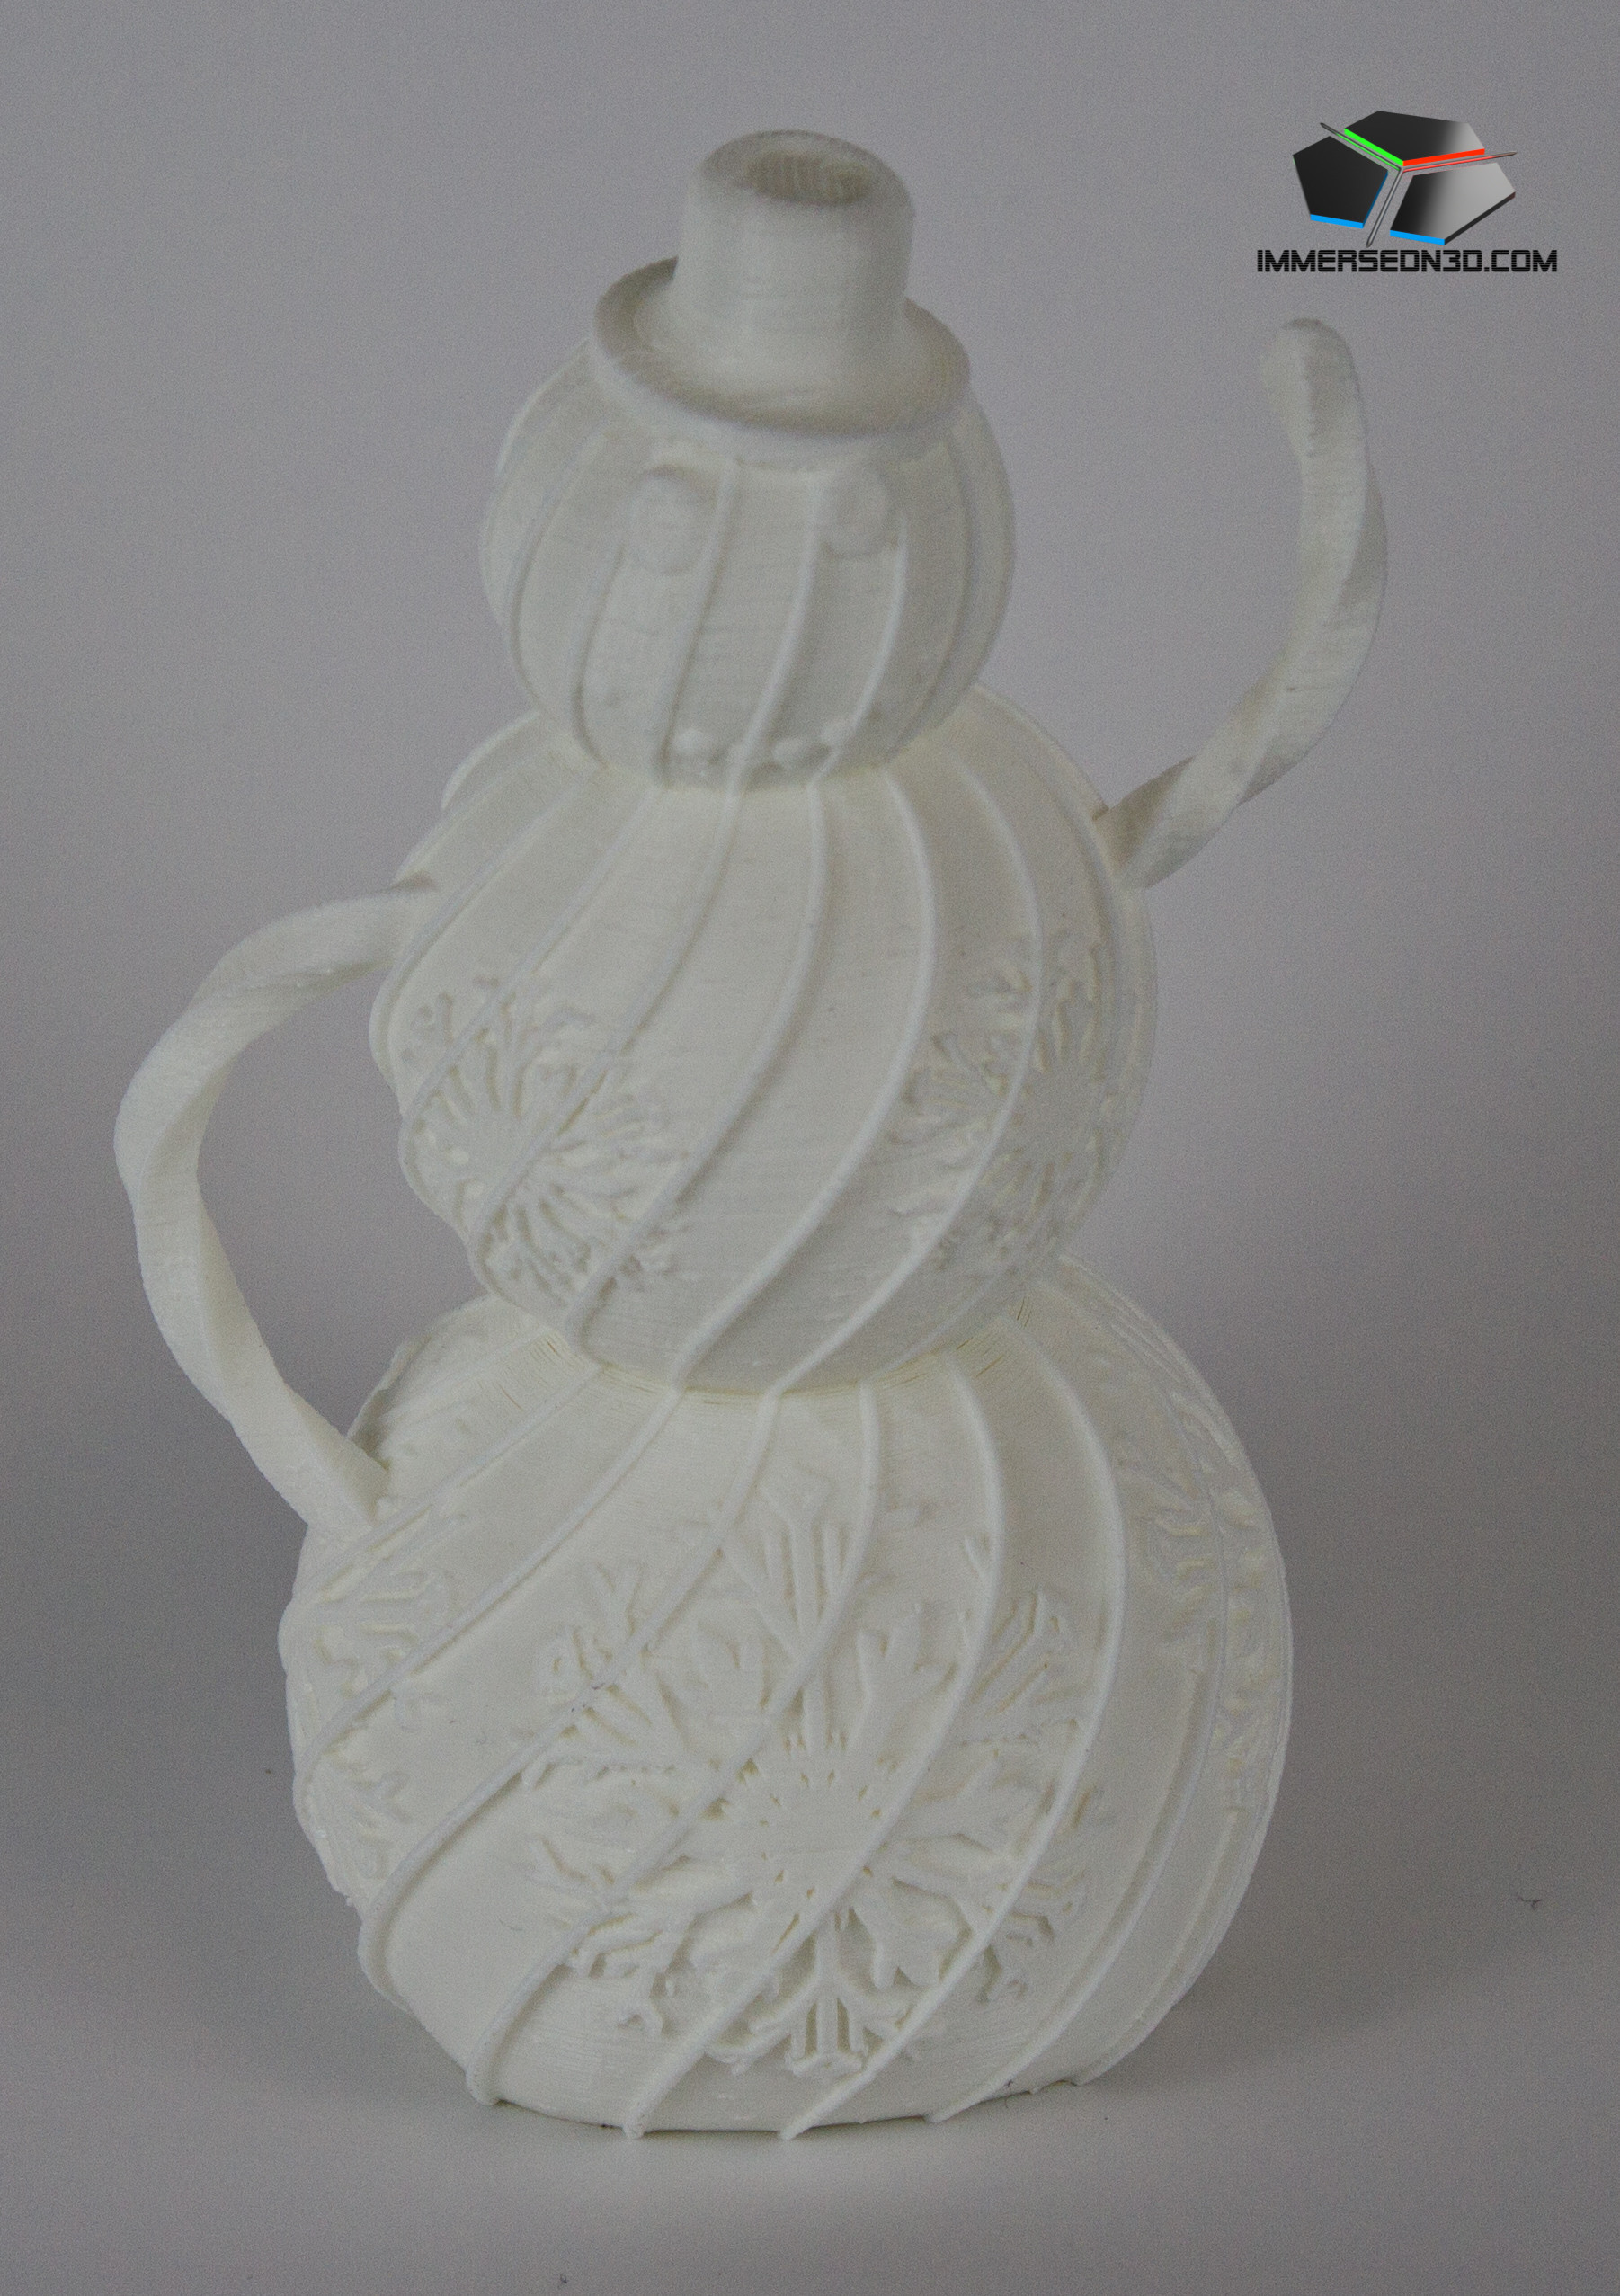 2014-12-19_IMG_1002_ImmersedN3D.jpg Download free STL file Decorative Holiday Snowman • 3D printing design, ImmersedN3D